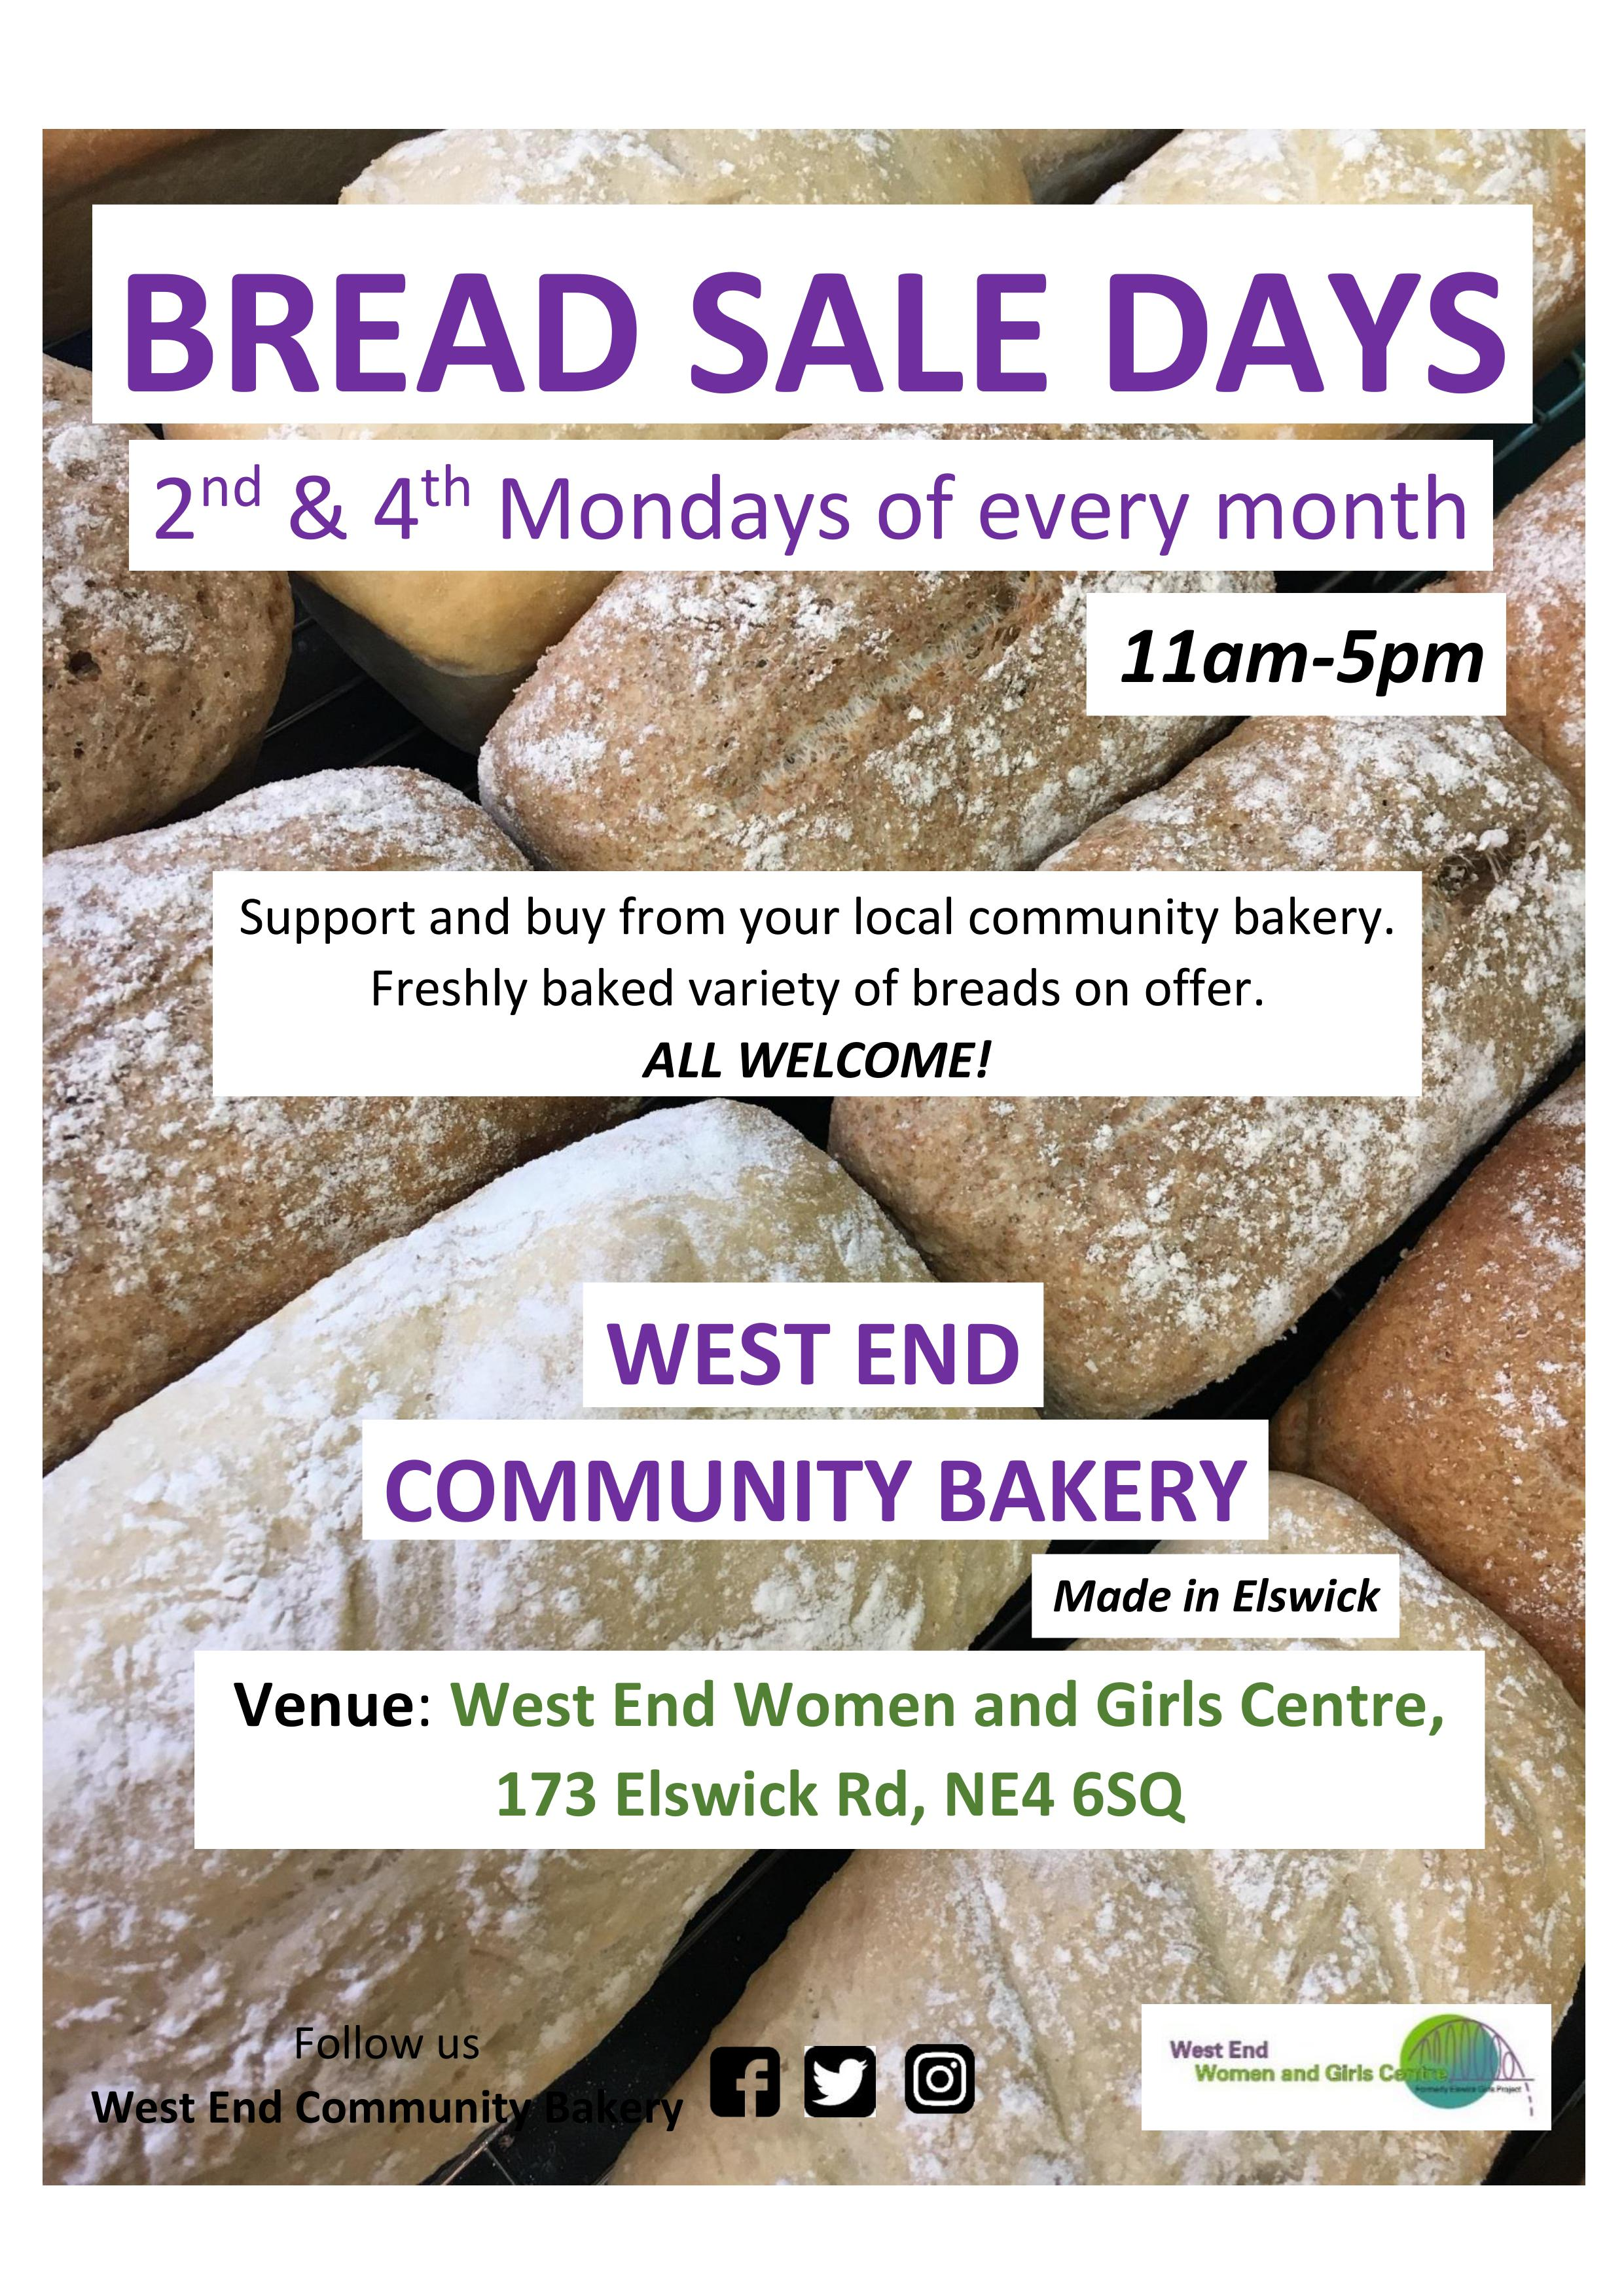 Come and get your fresh bread! - West End Community Bakery is excited to establish a monthly bread sale day, on the 2nd & 4th Mondays of every month, 11am-5pm!A variety of freshly baked breads will be available on the day, including white, brown, mozzarella and tomato, large and mini loaves. Have a request to make? Don't be shy! Dates:Monday 11th JuneMonday 25th JuneMonday 9th JulyMonday 23rd JulyMonday 13th August*Monday 10th SeptemberMonday 24th SeptemberMonday 8th OctoberMonday 22nd OctoberMonday 12th NovemberMonday 26th NovmeberMonday 10th December*** only one August date due to Bank Holiday on Monday 27th August             **only one December date due to Christmas Eve Be kind and share this event!